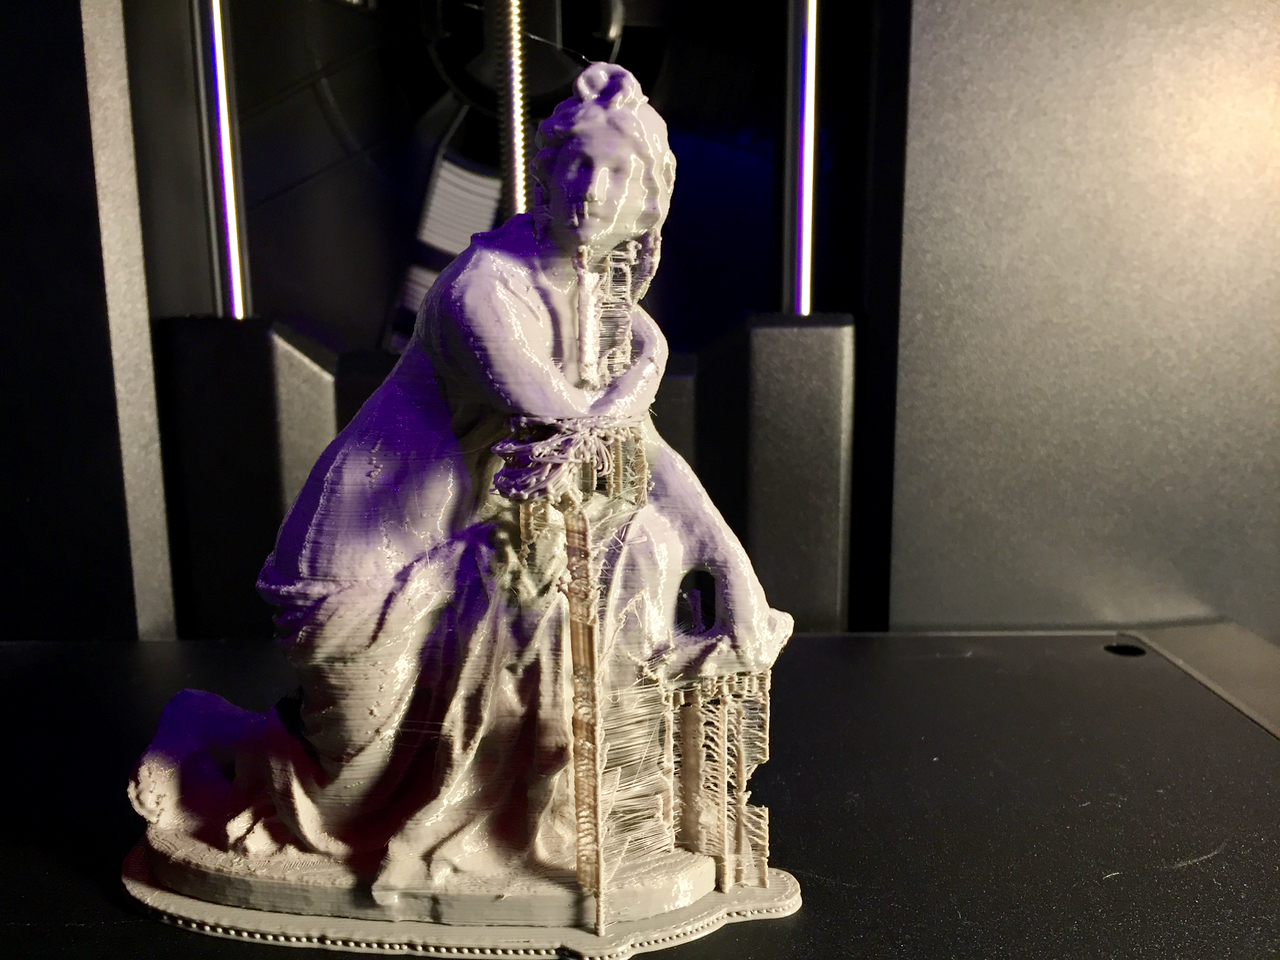 Tall supports are sometimes challenging on the MakerBot Replicator+